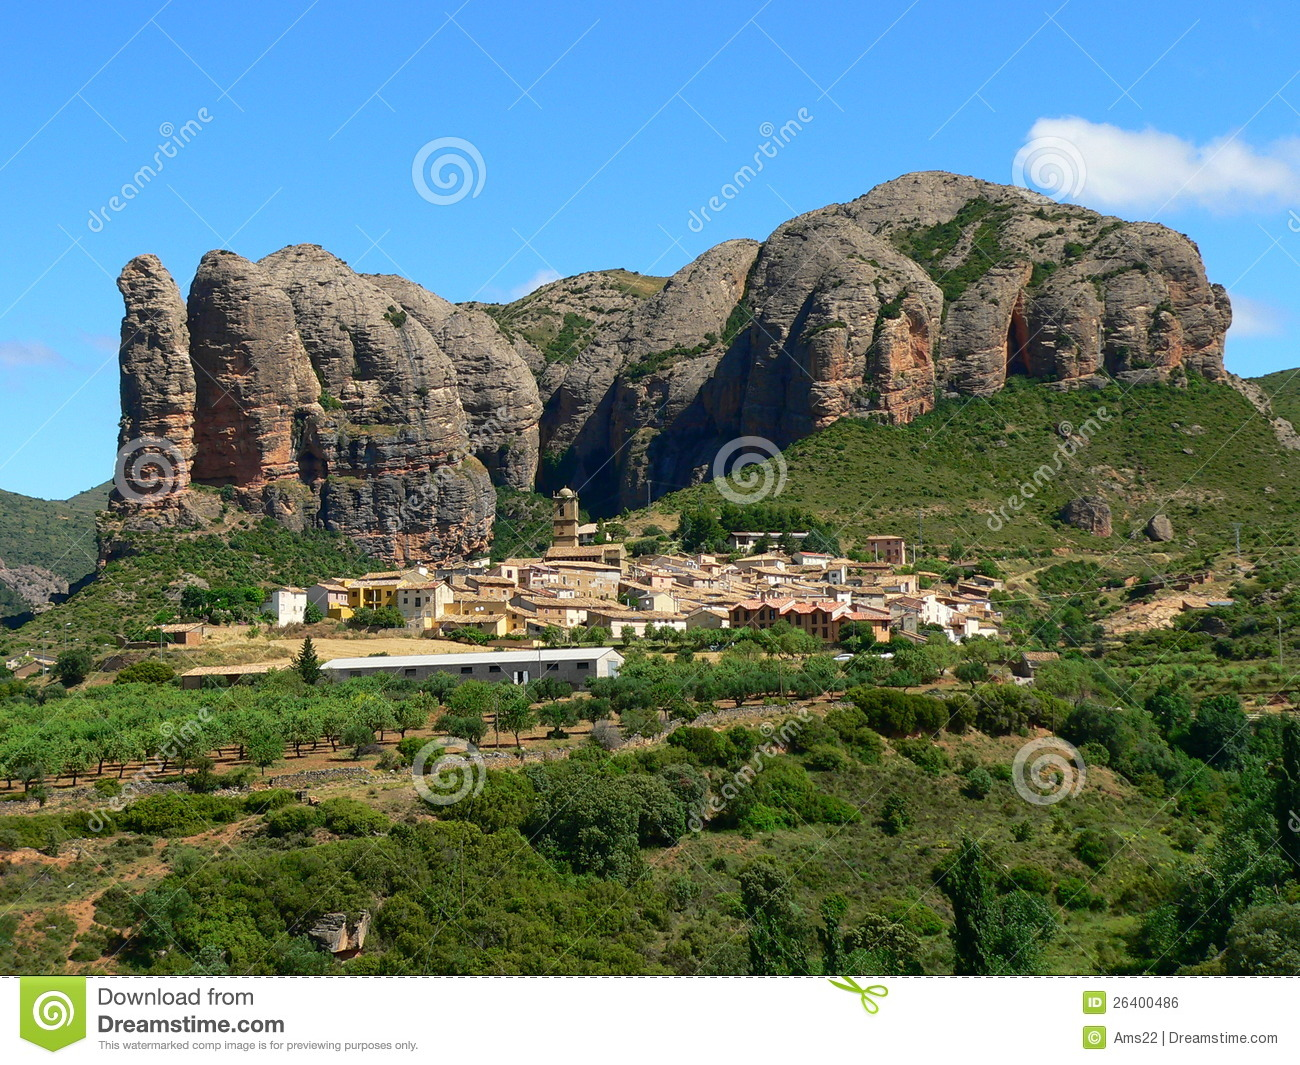 Huesca Spain  city pictures gallery : Aguero, Huesca Spain Royalty Free Stock Image Image: 26400486